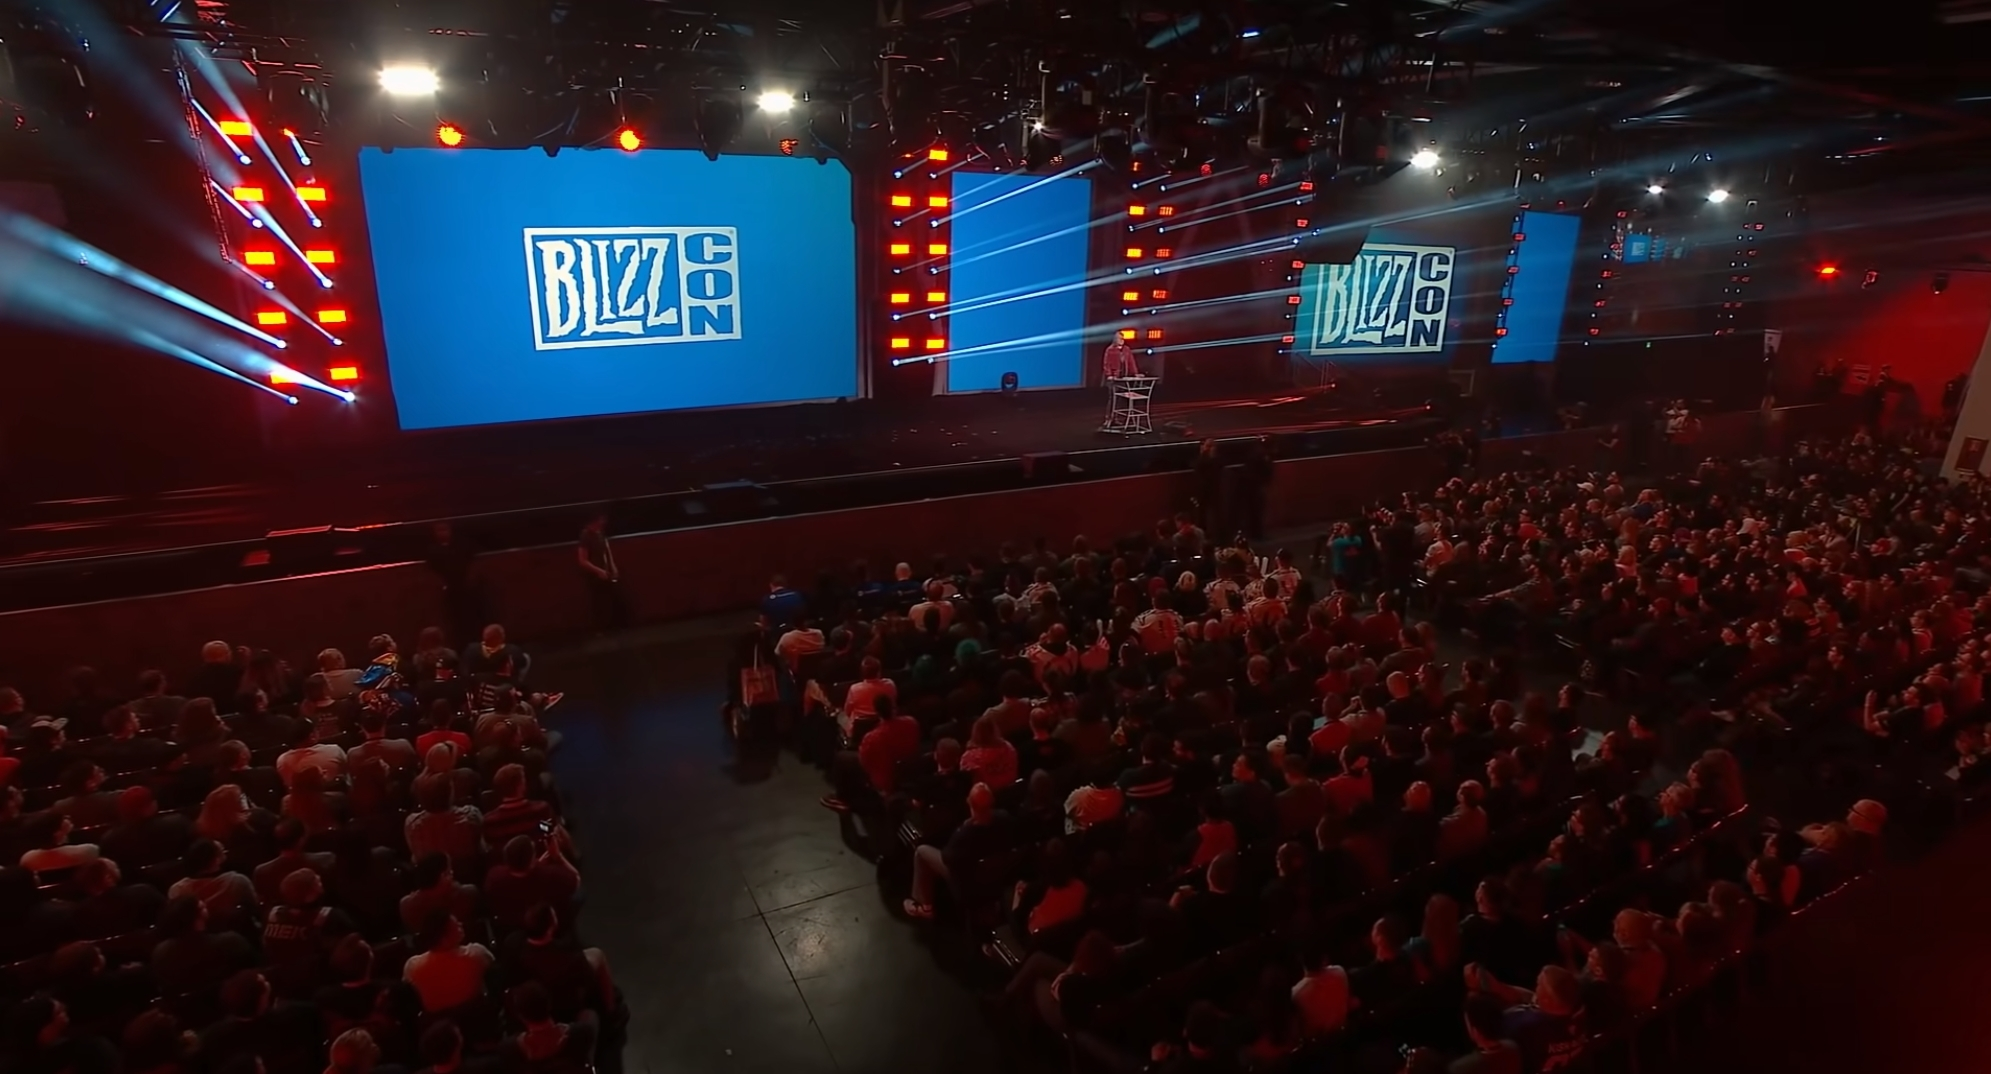 Blizzard Releases BlizzConline Schedule For Mid-February Online Convention